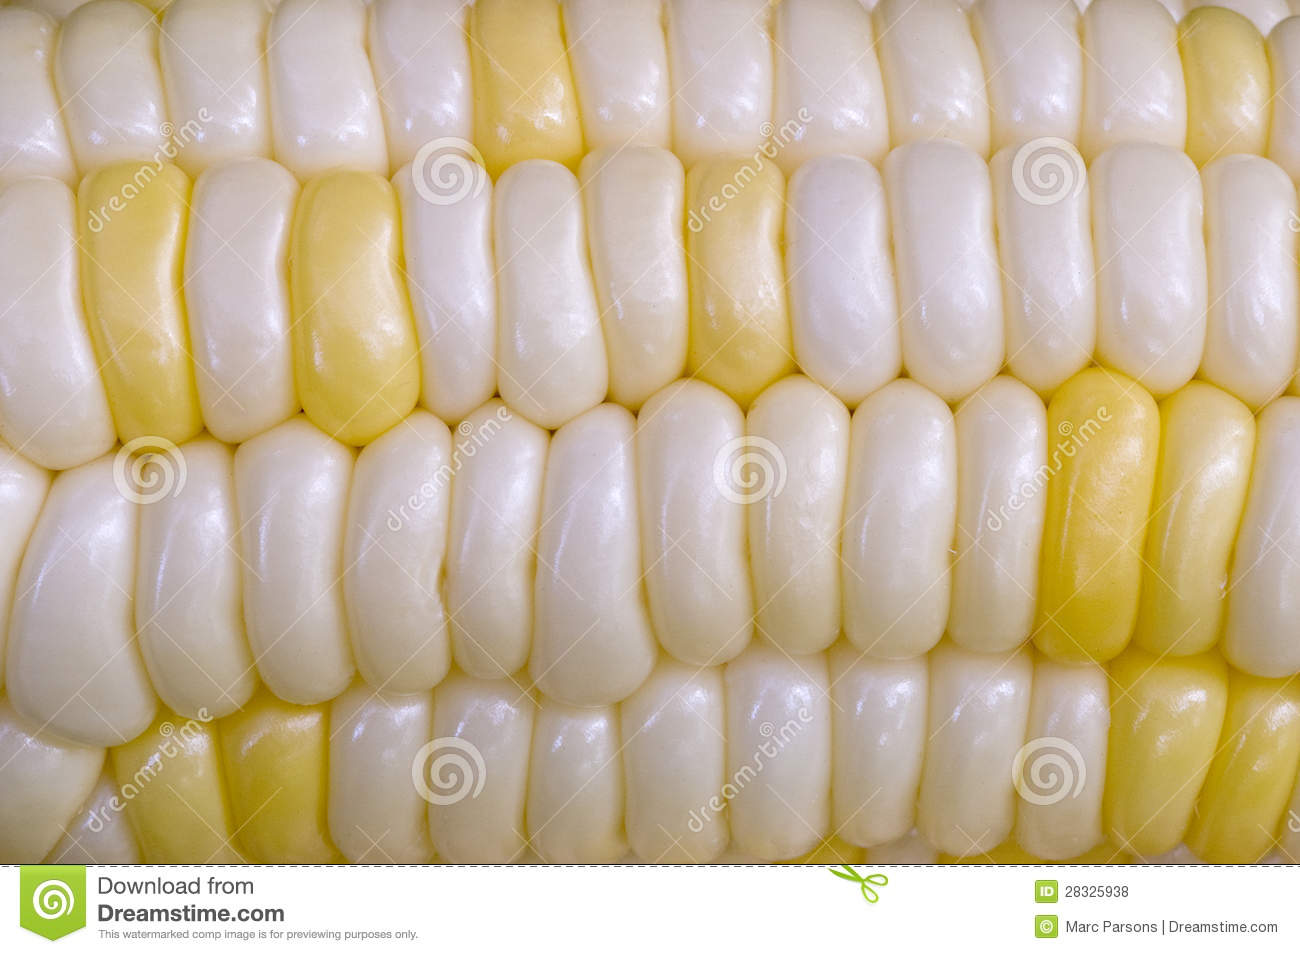 How to Eat Corn on the Cob How to Eat Corn on the Cob new pics